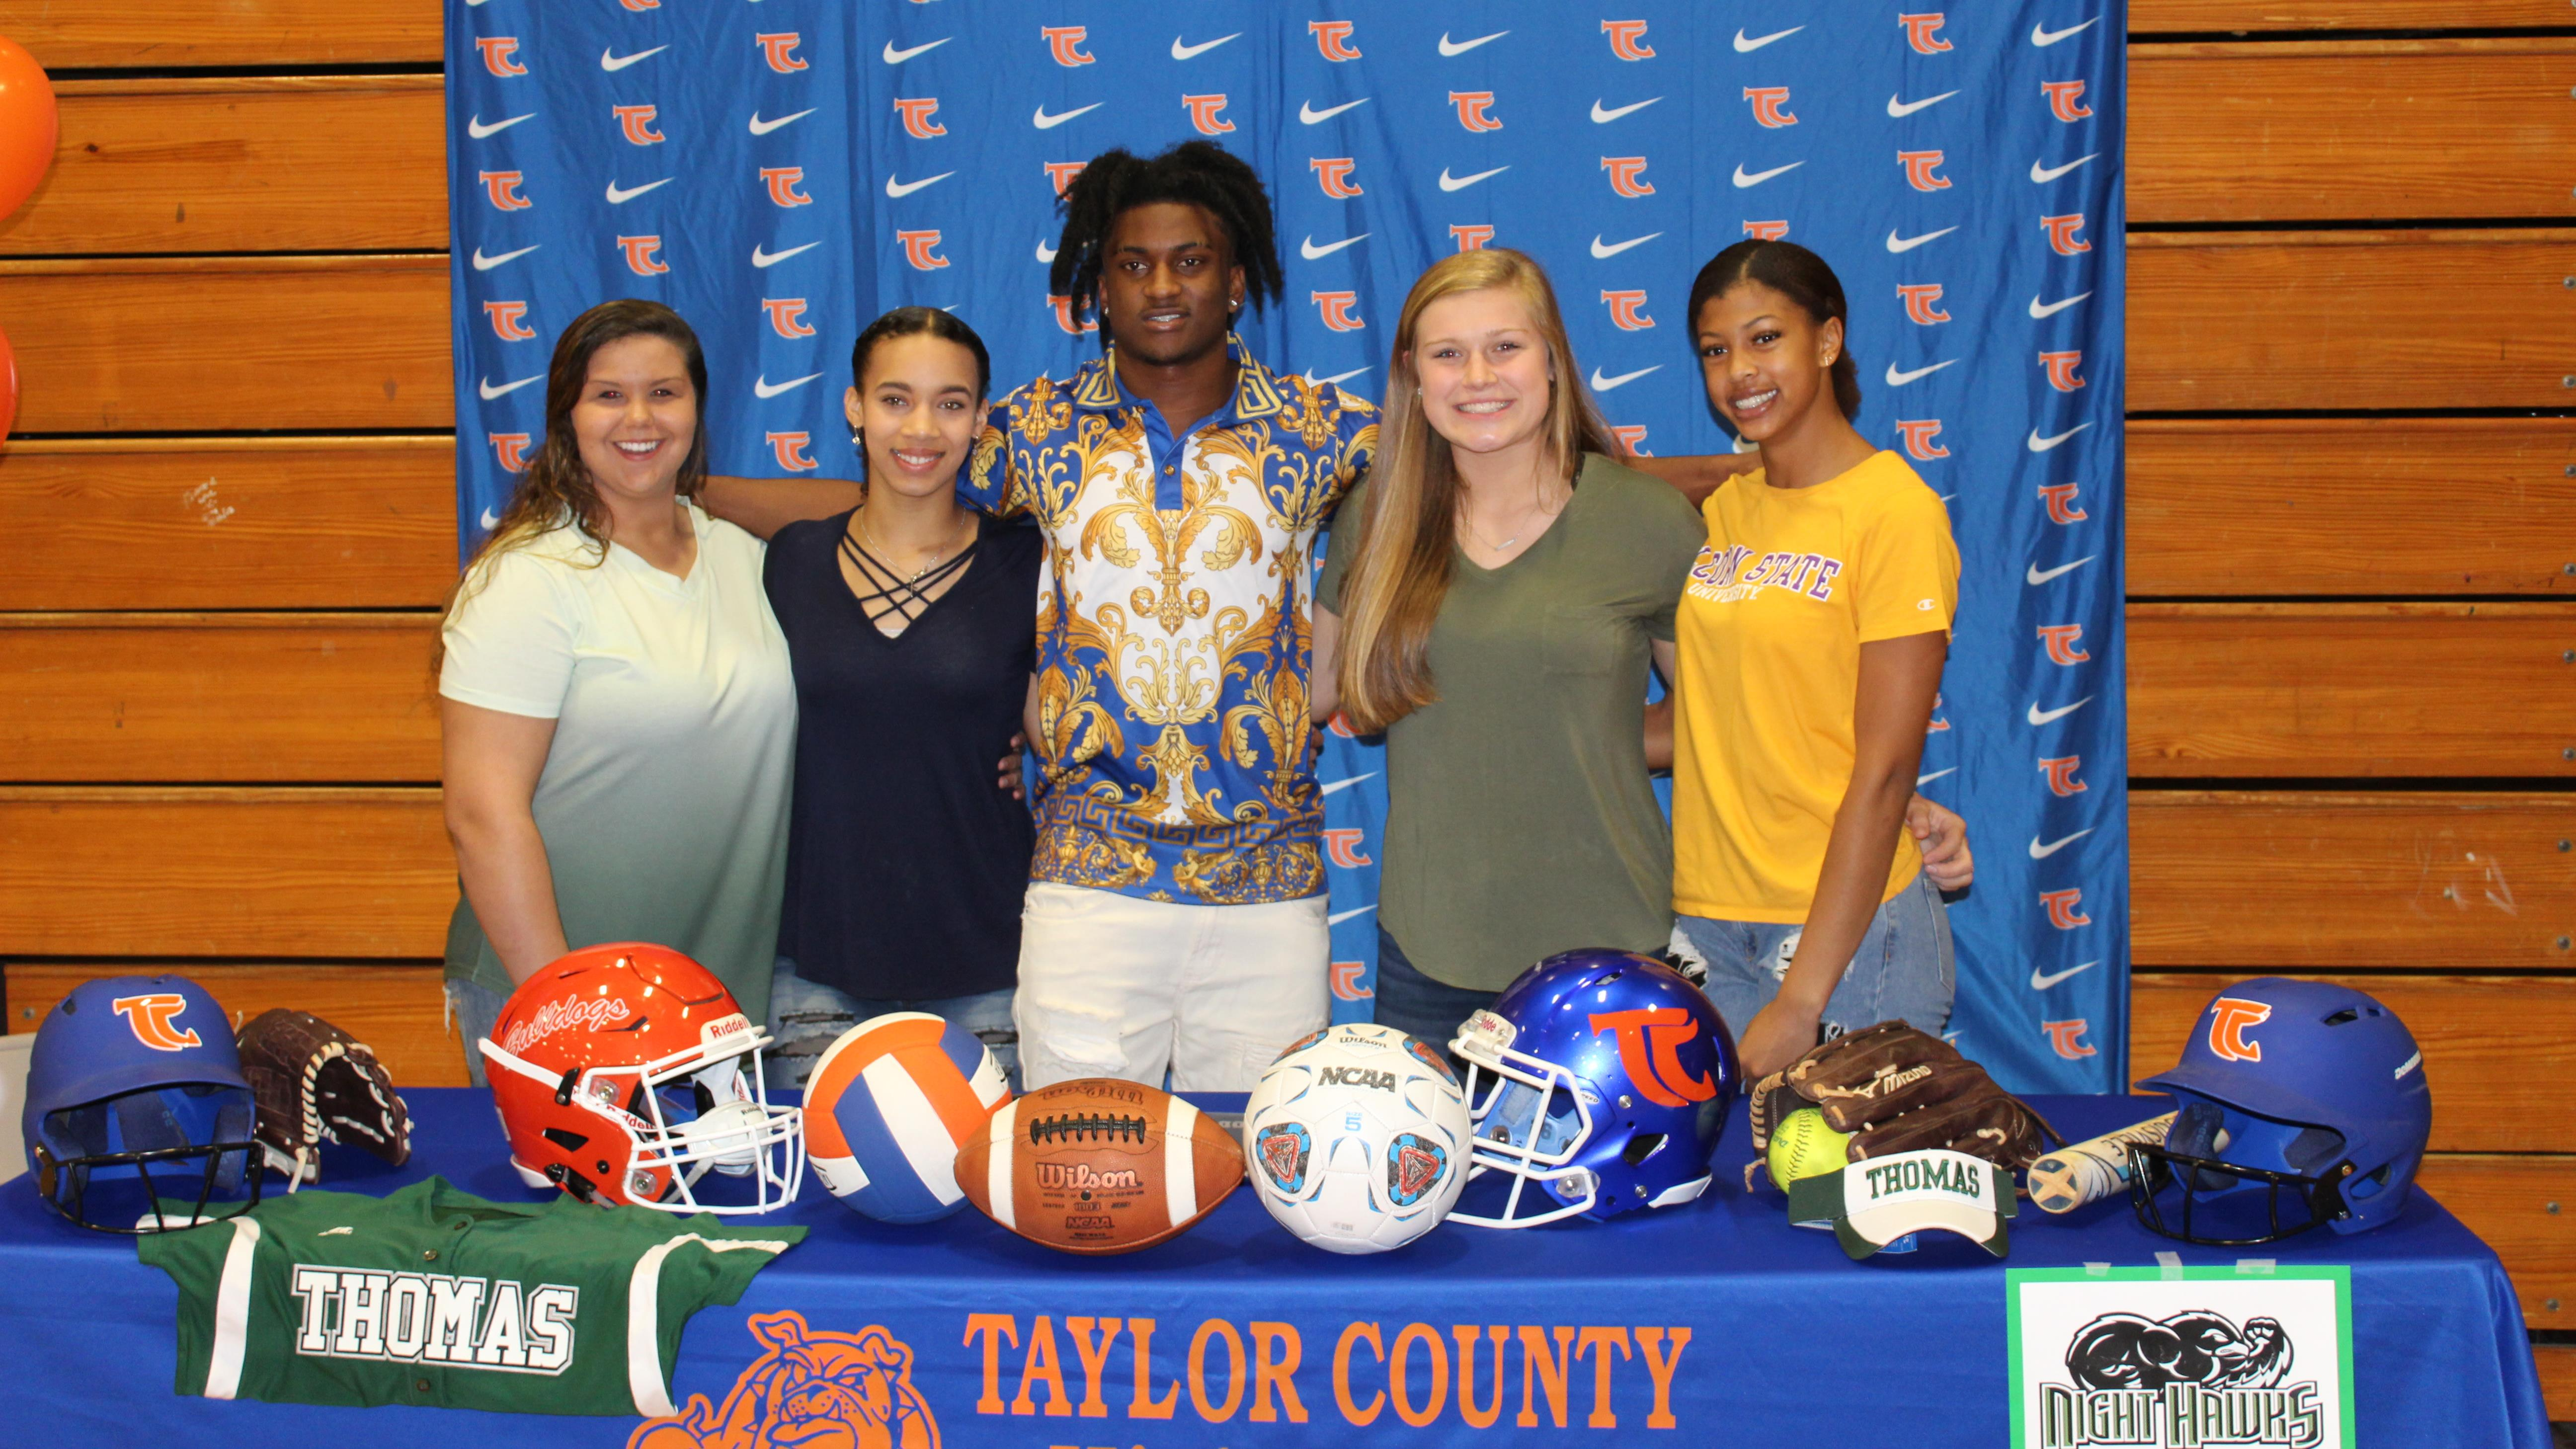 From left to right: Ann Marie McAfee, Tailor Gillyard, Robert Glanton, Jordan Pyke, Ceven Kidd at their college signing ceremony. Jordan and Ann Marie are planning to attend Thomas University to play softball. Academy. Ceven is going to Alcorn State University for soccer. Tailor will be attending __ to play both volleyball and softball. Robert is going to play football for the Air Force